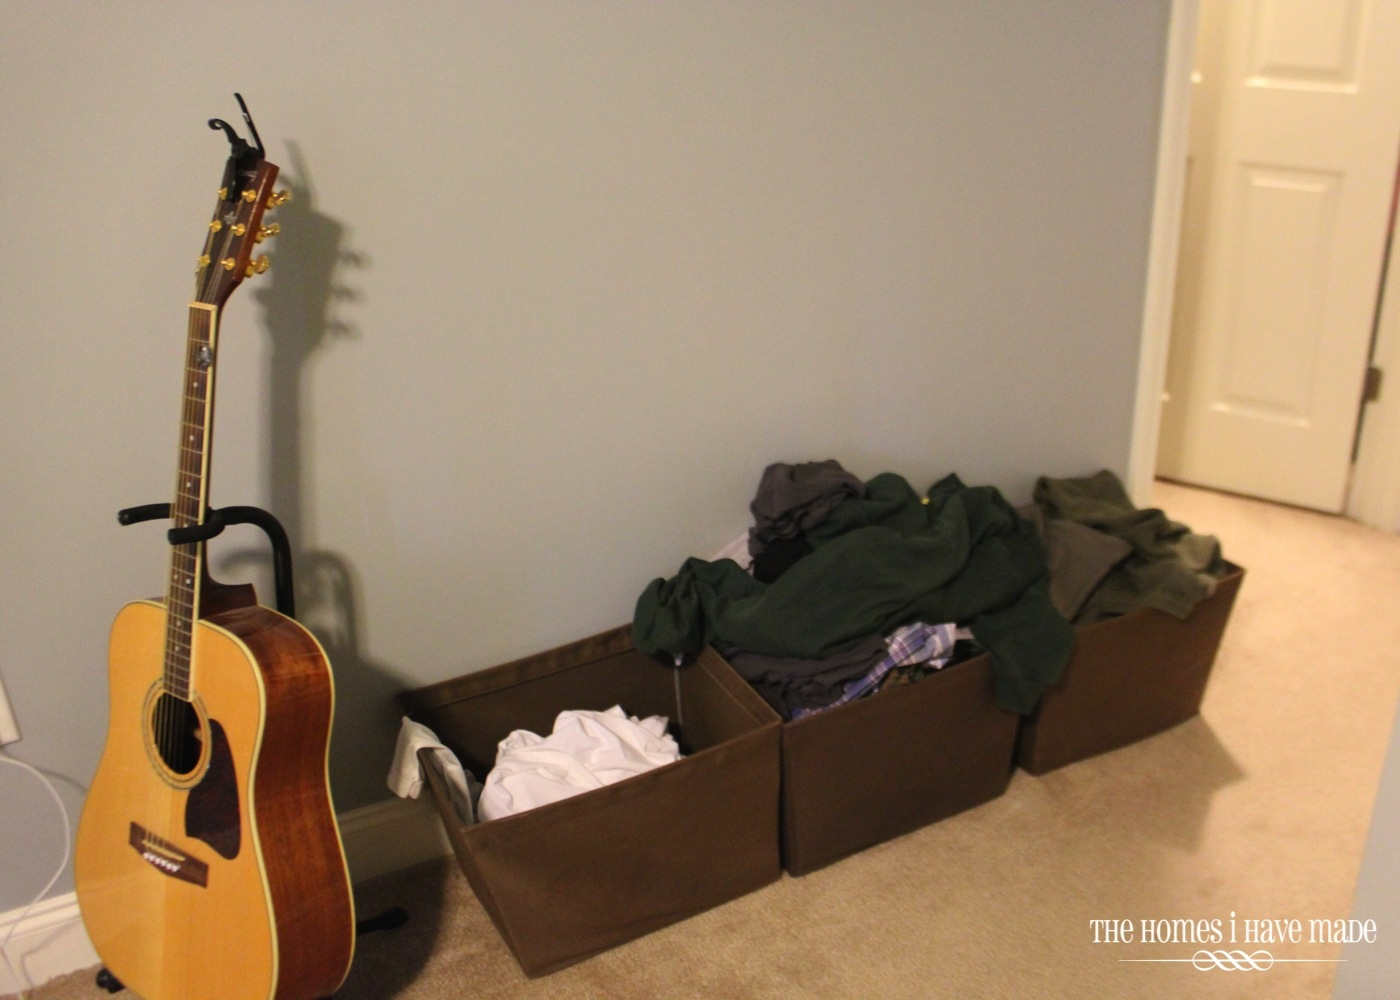 talk about airing our dirty laundry sheesh this room really was a